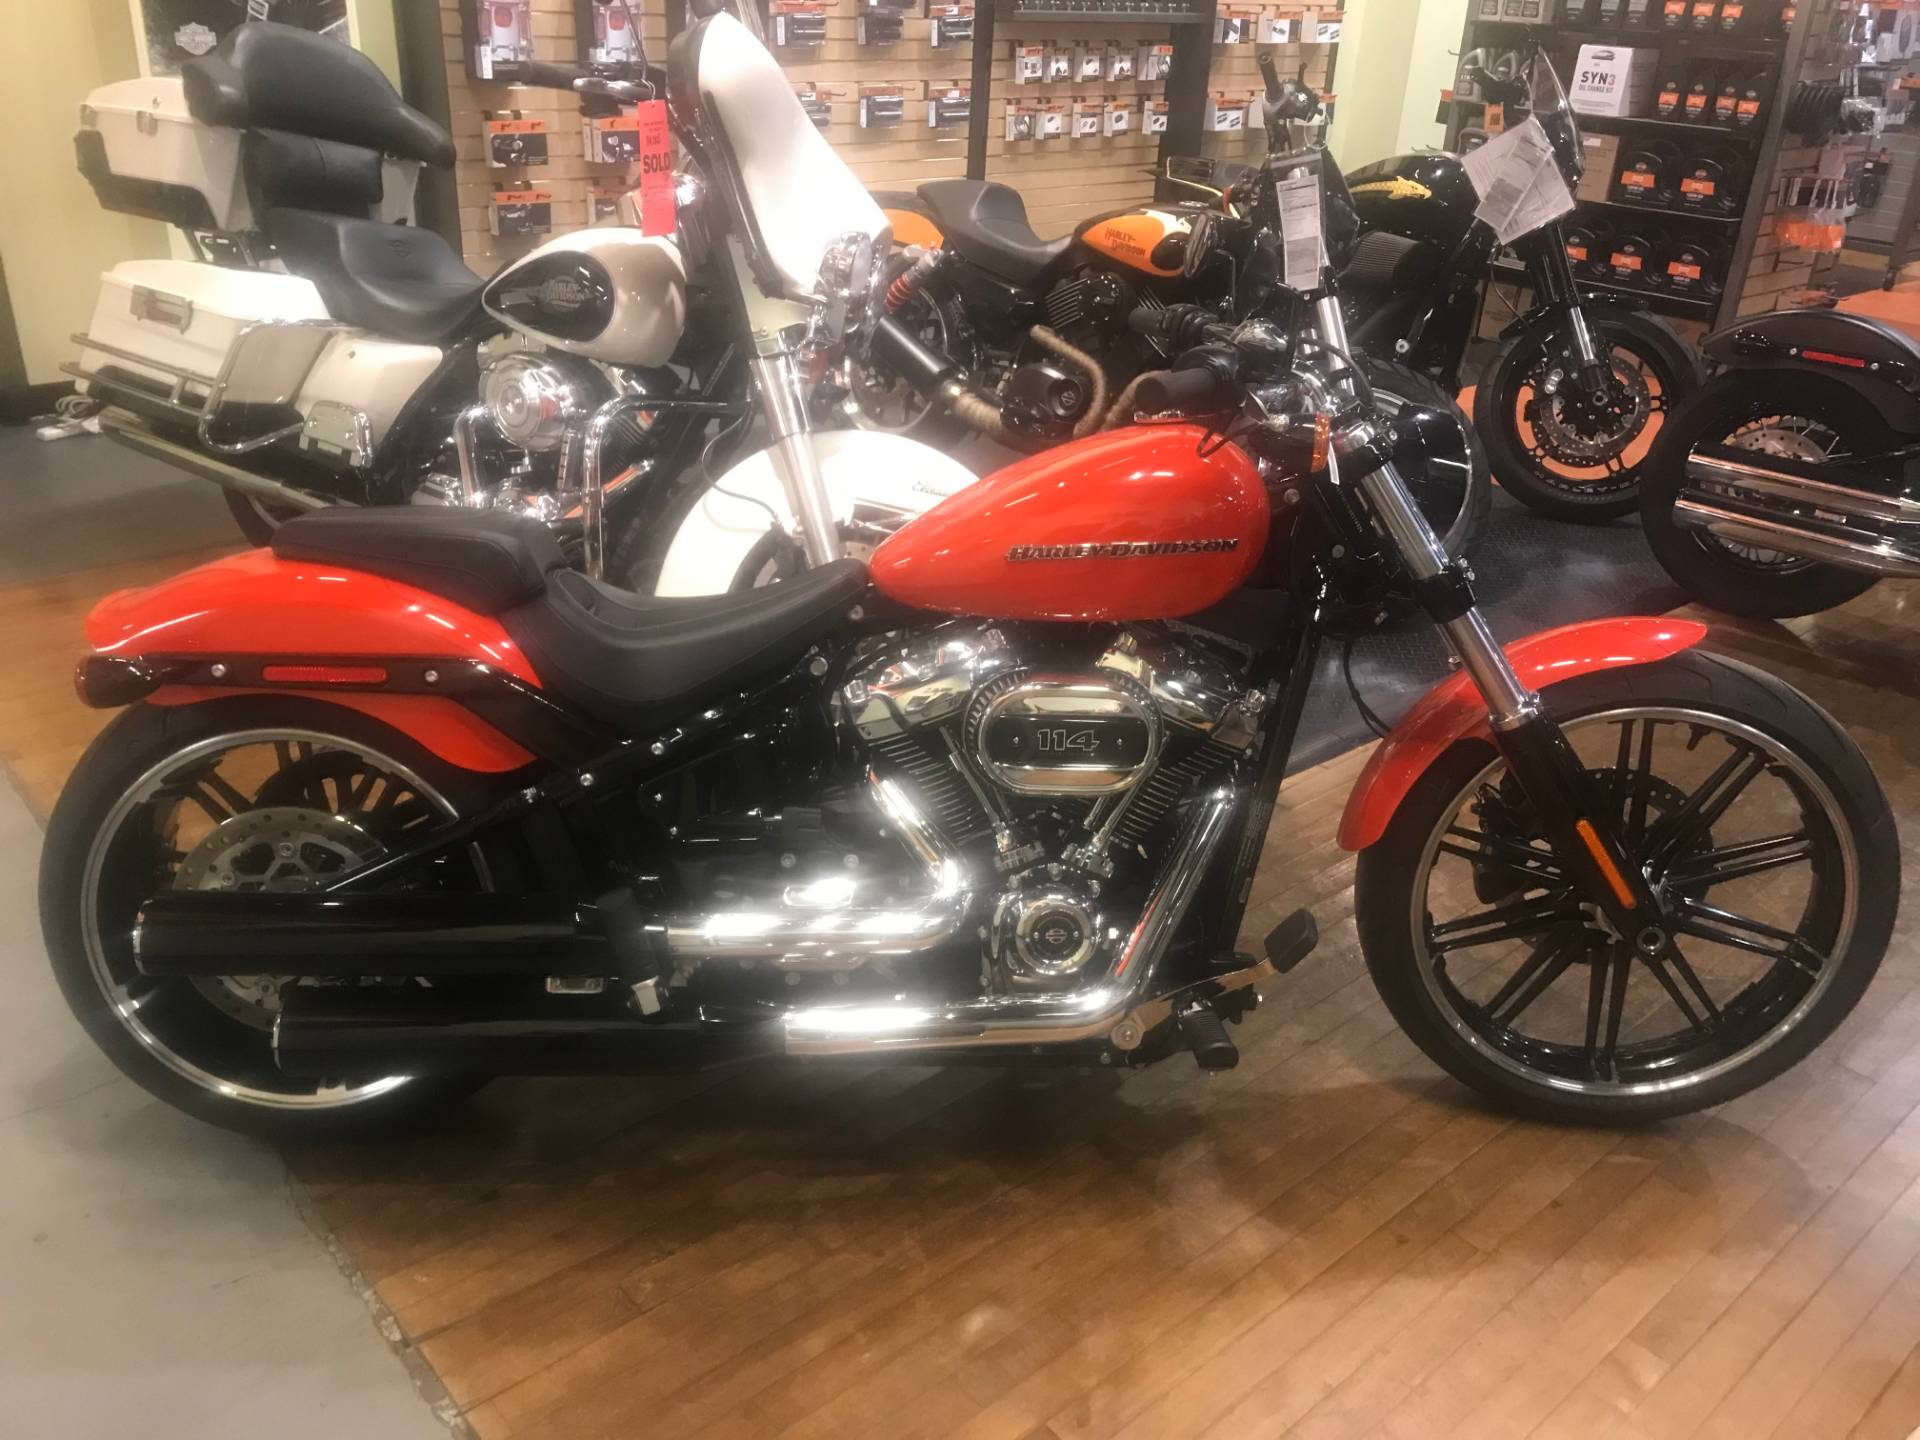 2020 Harley-Davidson BREAKOUT in Lakewood, New Jersey - Photo 1